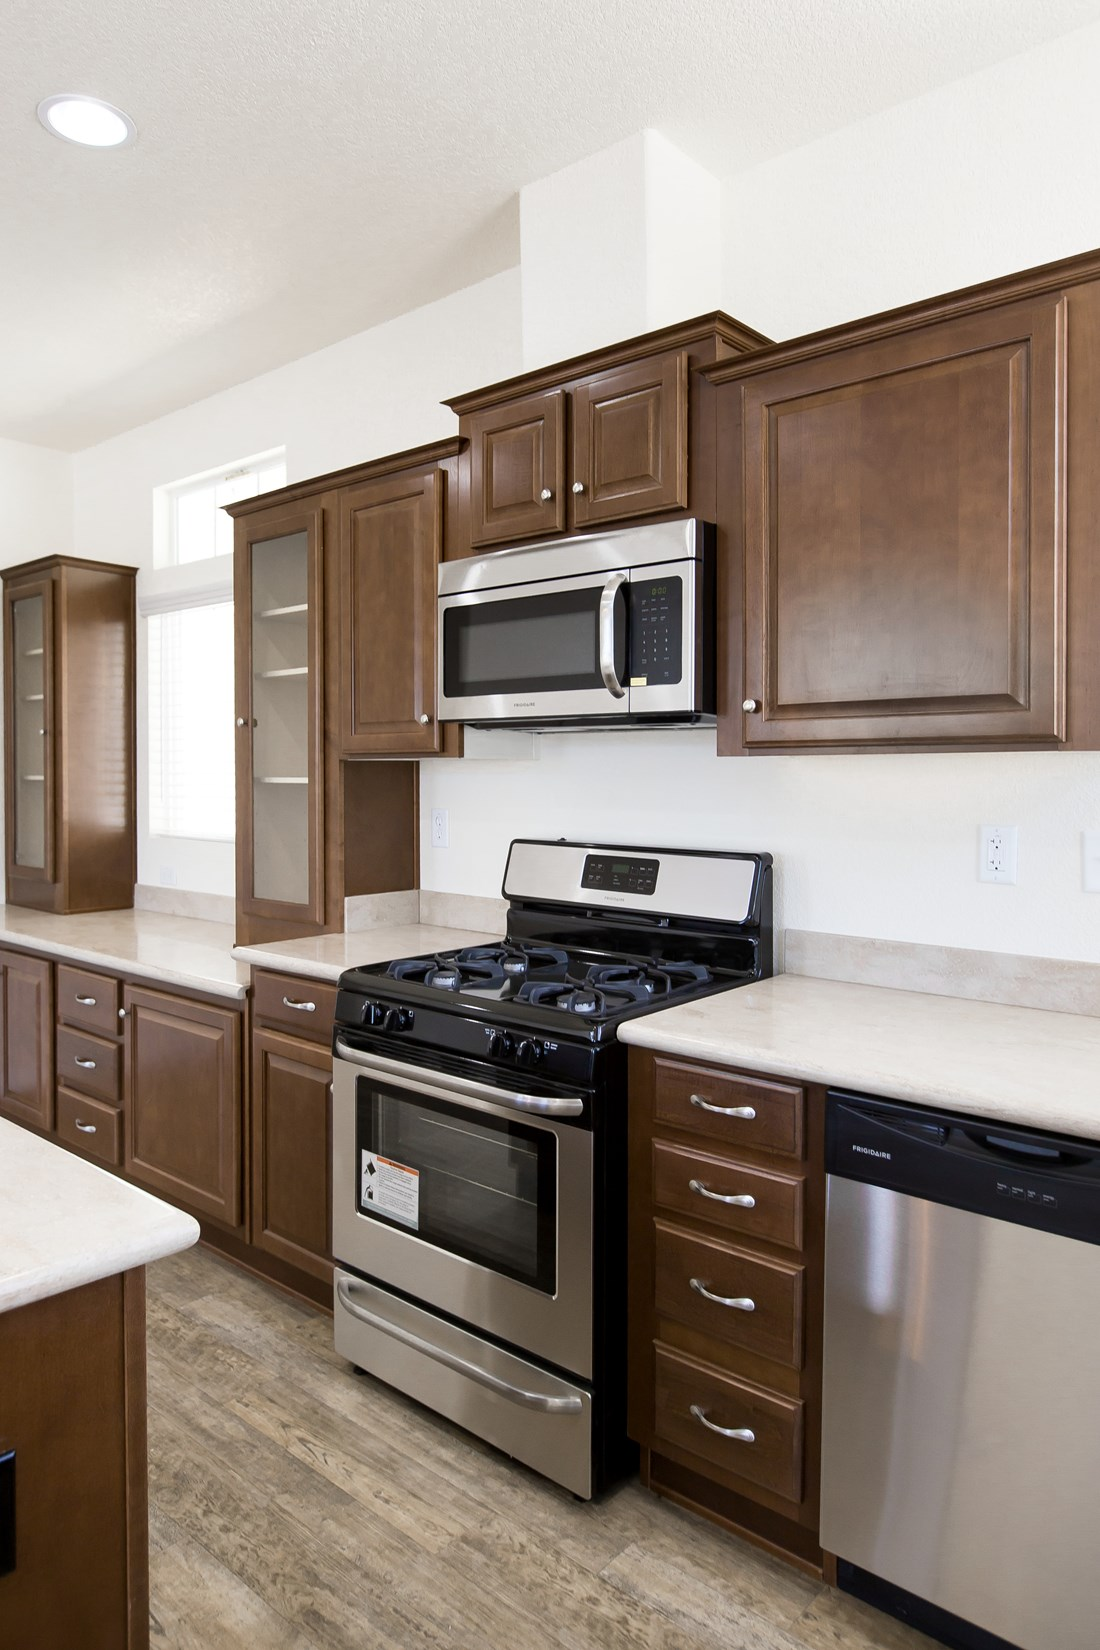 The CK501A Kitchen. This Manufactured Mobile Home features 3 bedrooms and 2 baths.